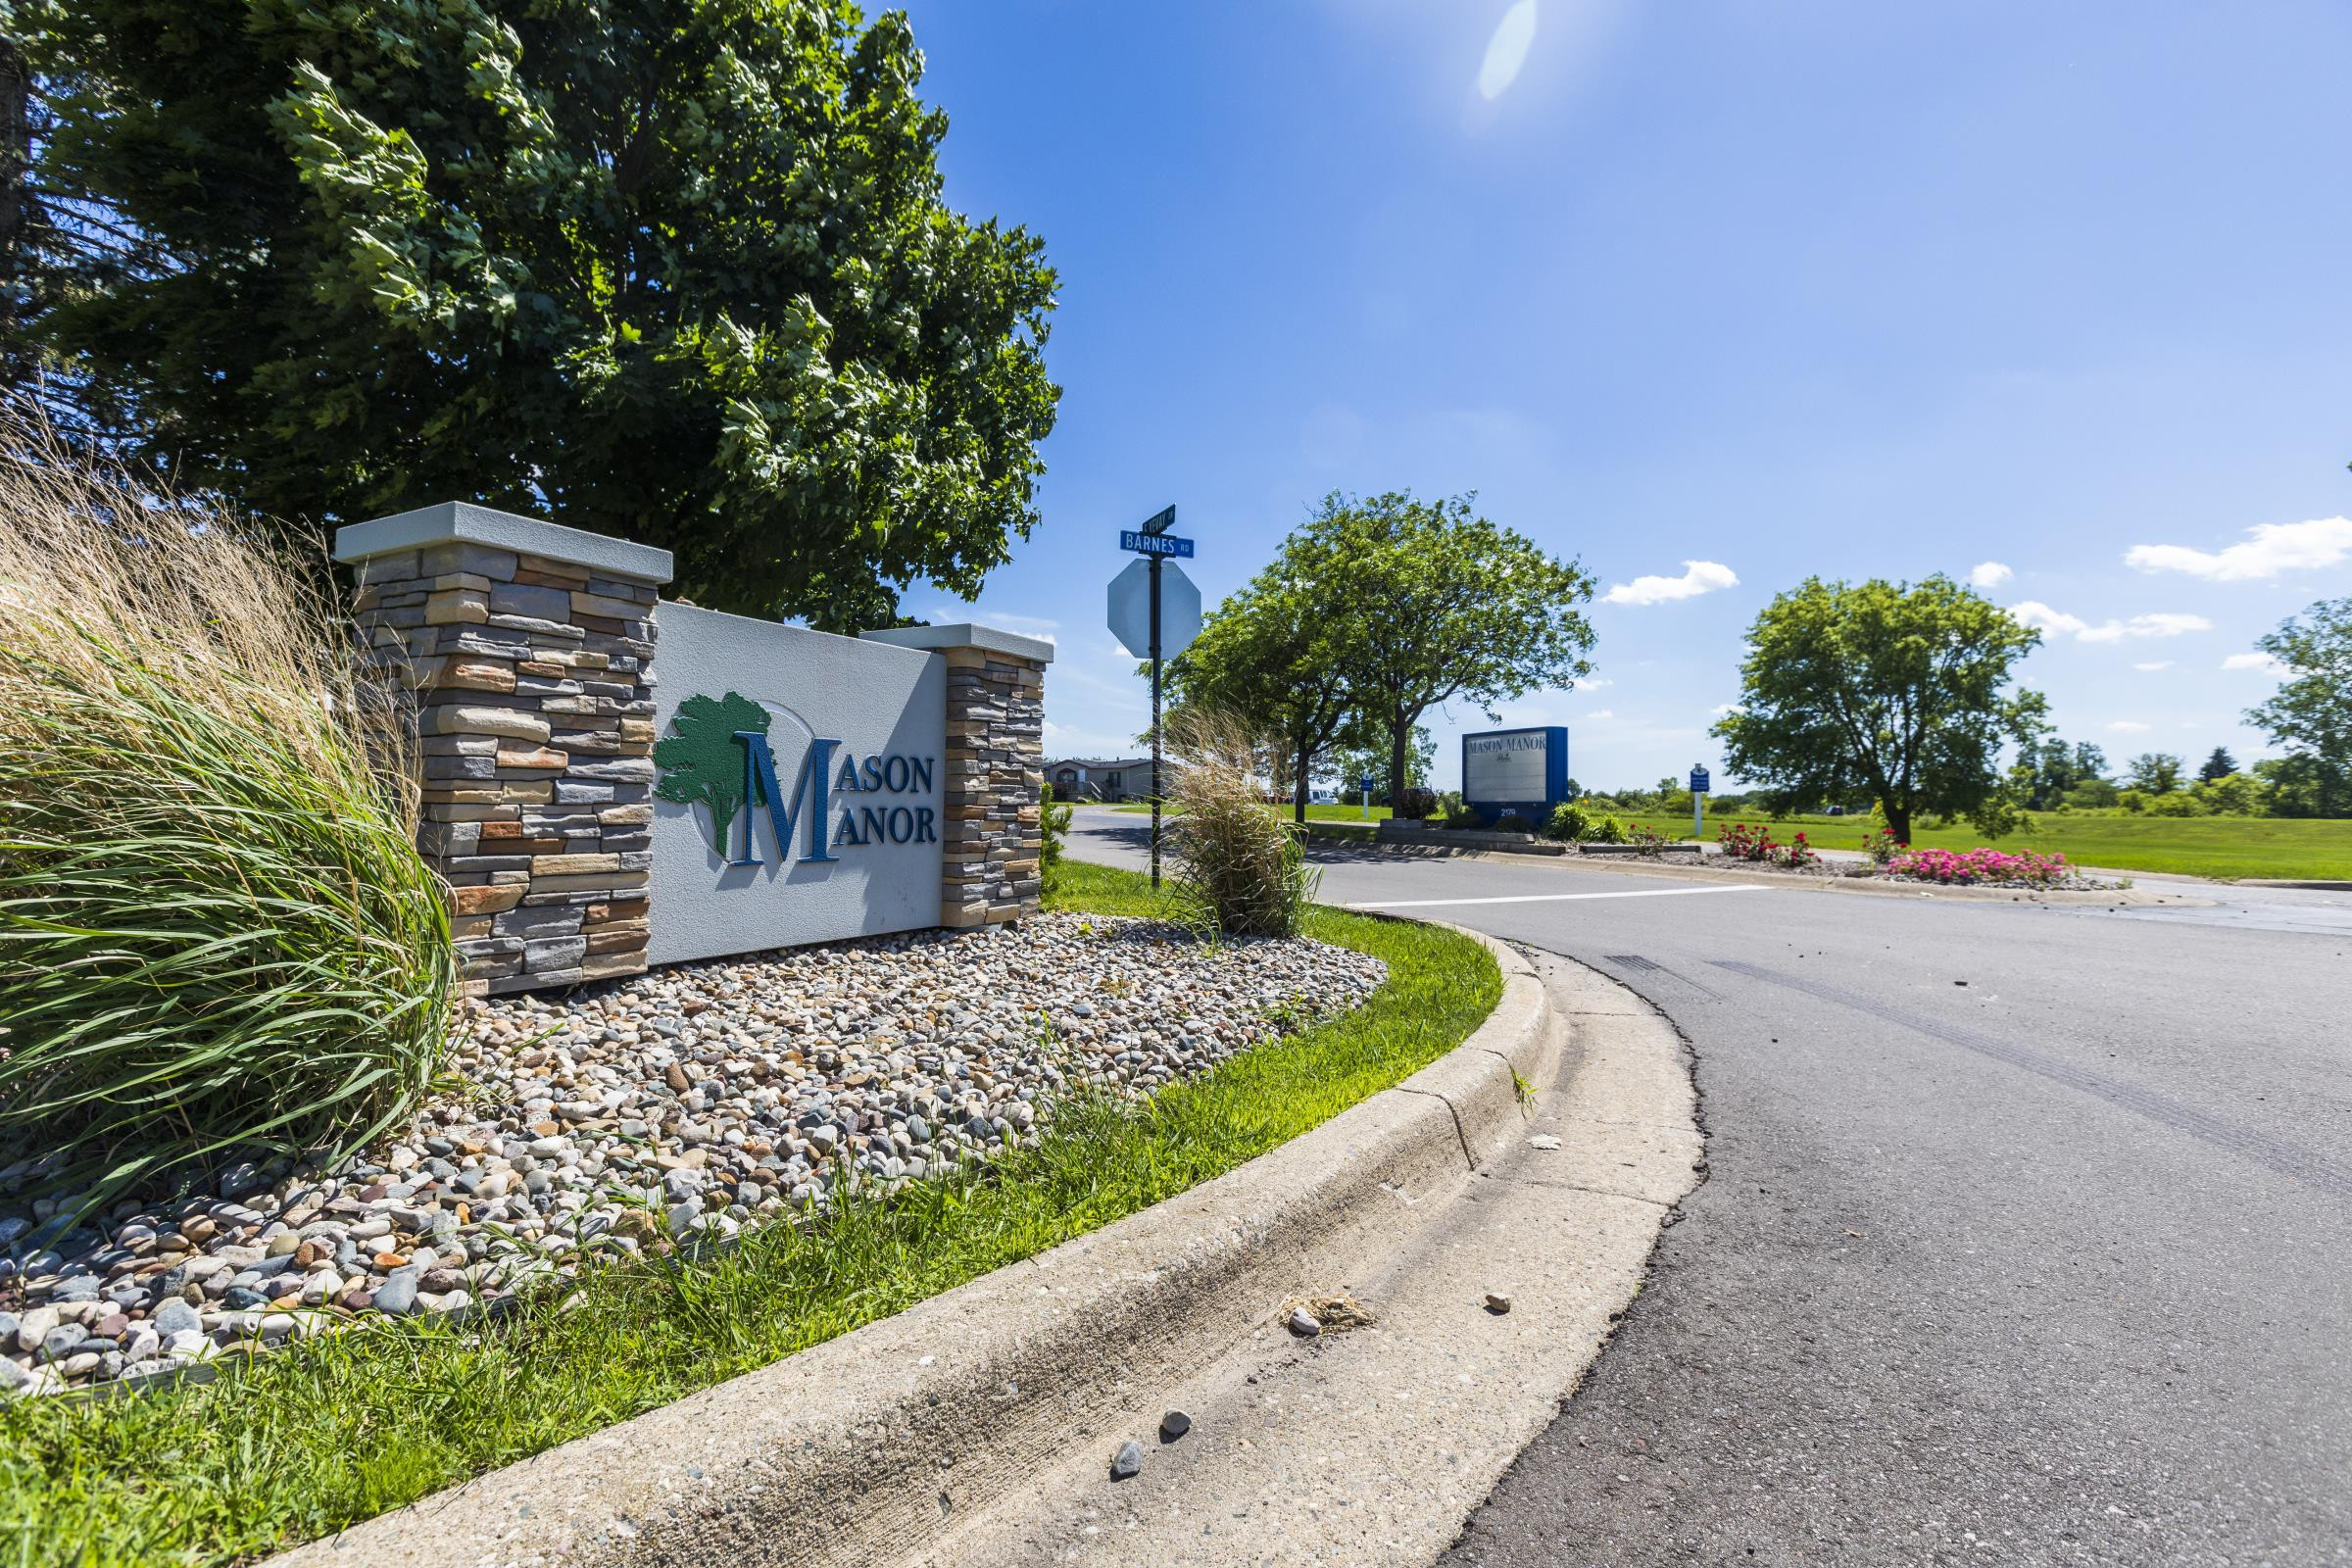 Apartments Near LCC Mason Manor for Lansing Community College Students in Lansing, MI